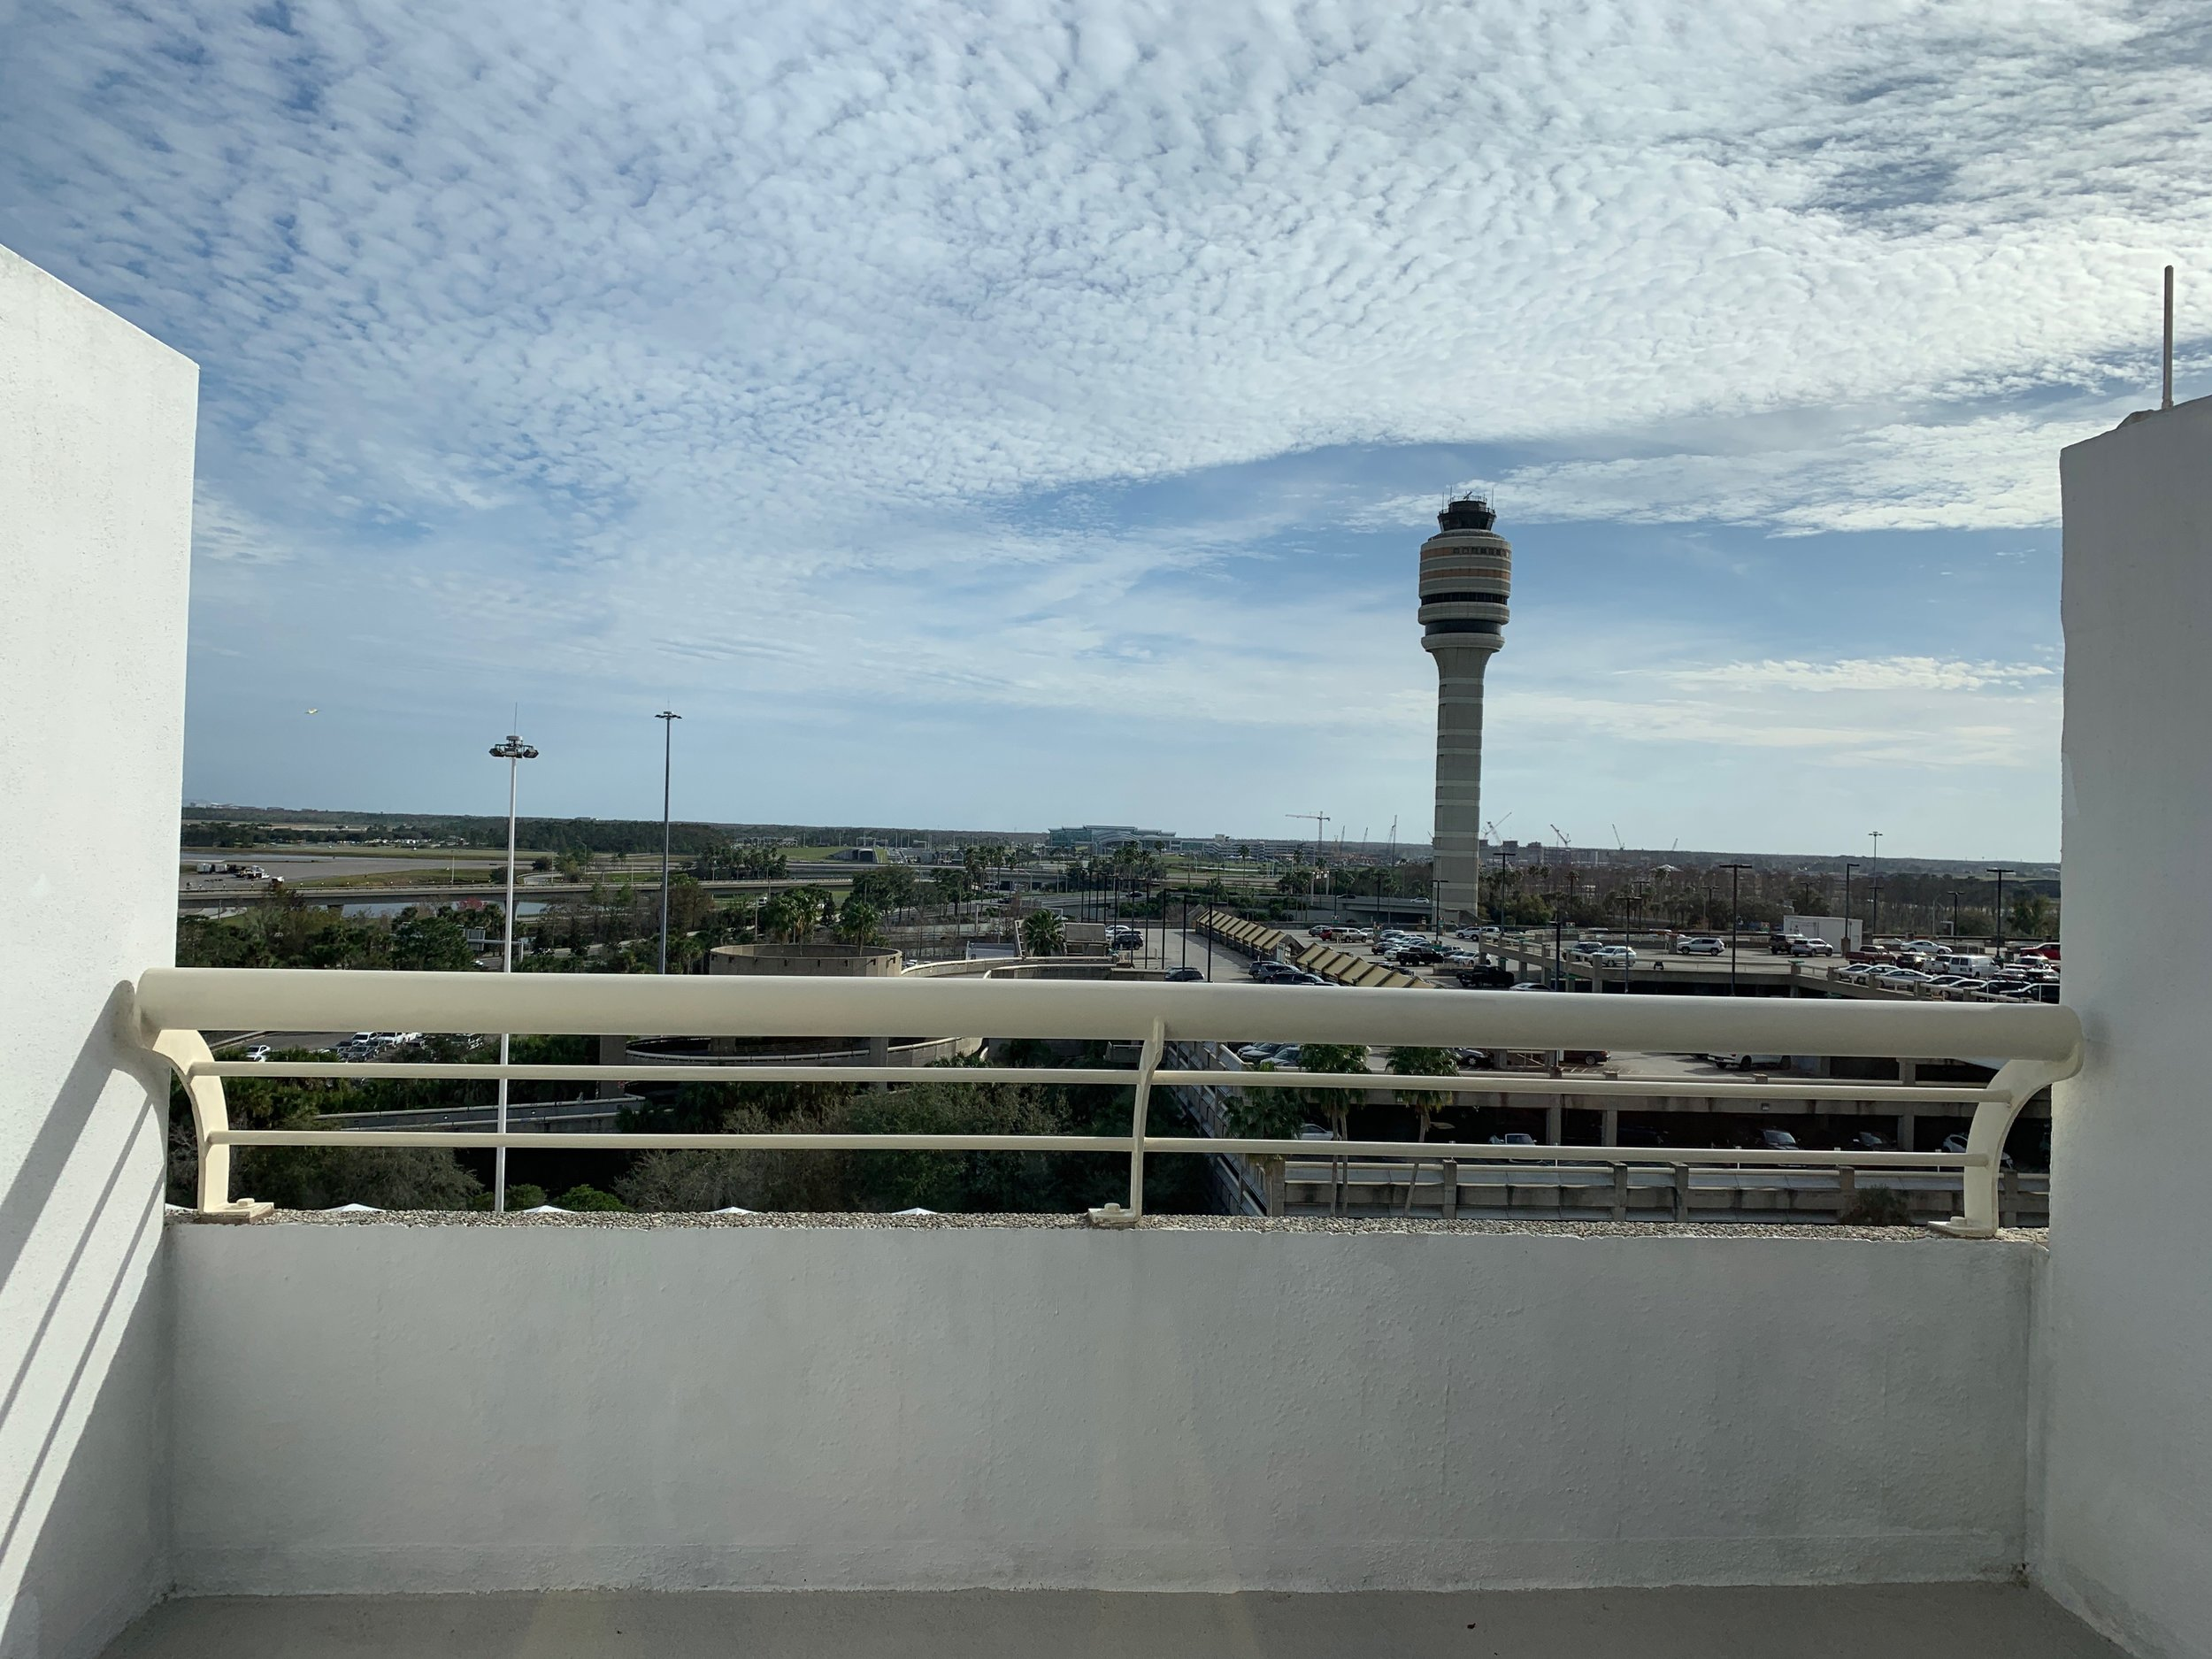 HUGE balcony over looking the airport parking and tower.